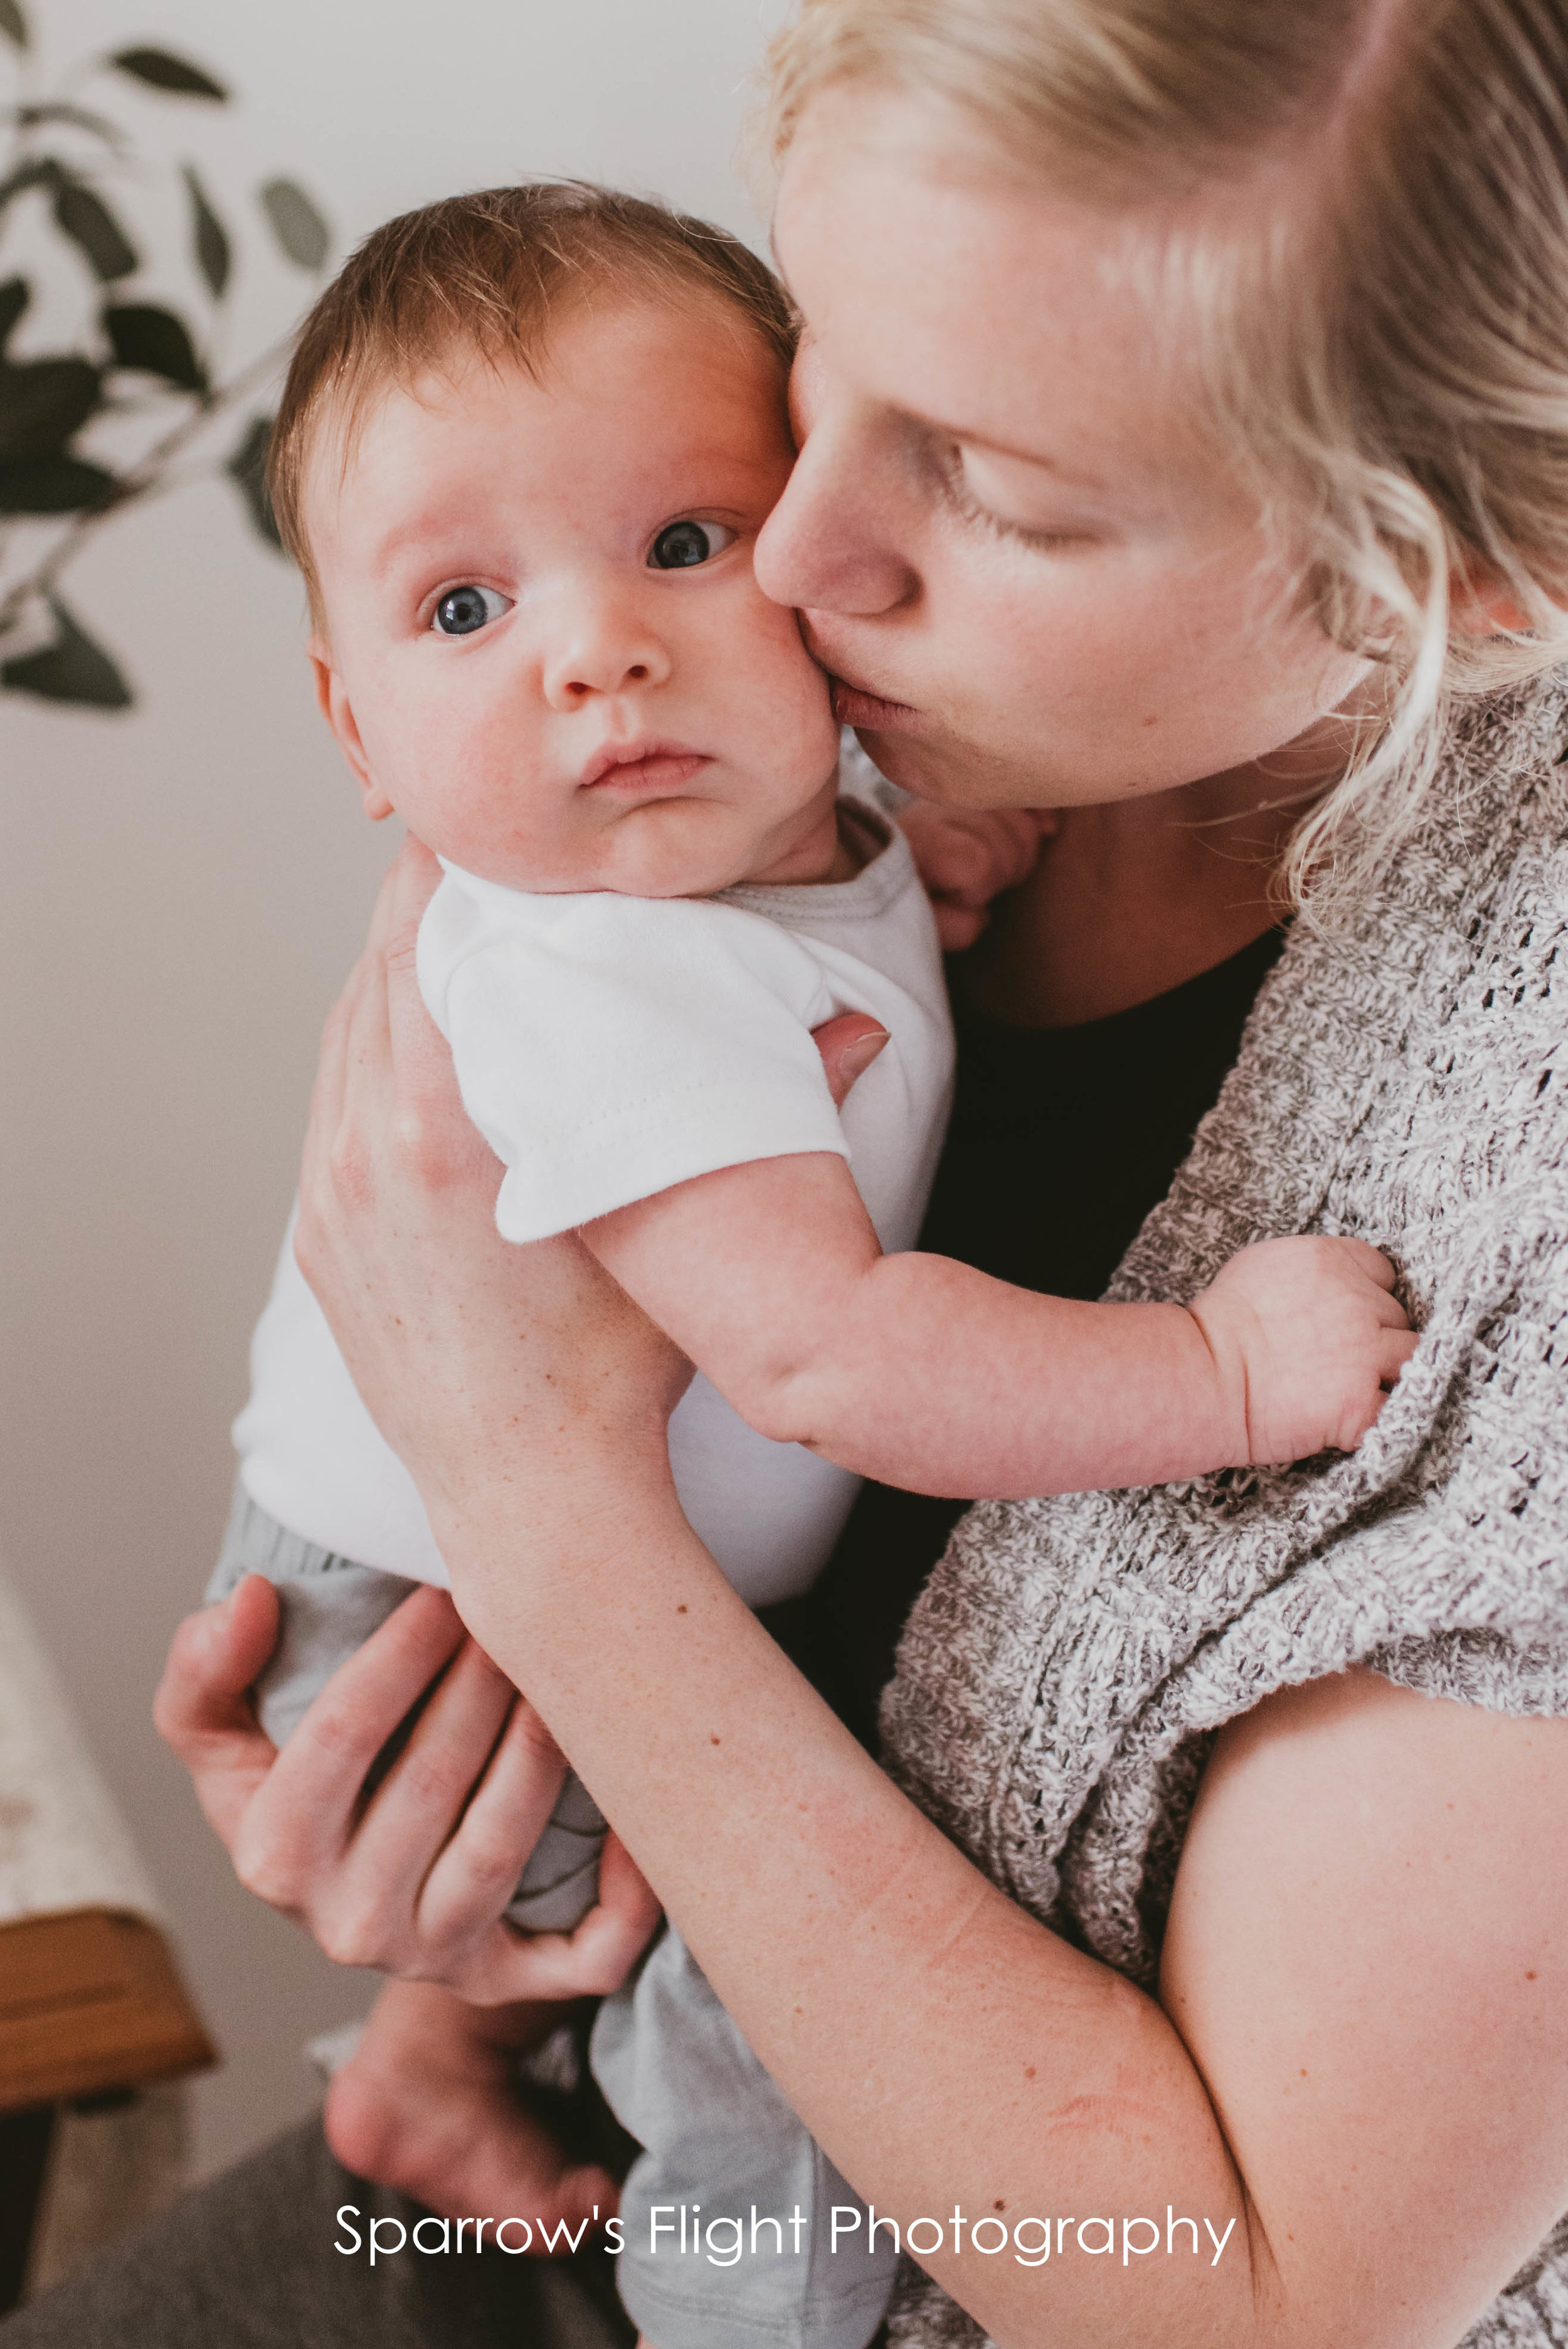 sparrows-flight-photography-full-service-photographer-lancaster-pa-baby-newborn-mommy-and-me (44 of 64).JPG